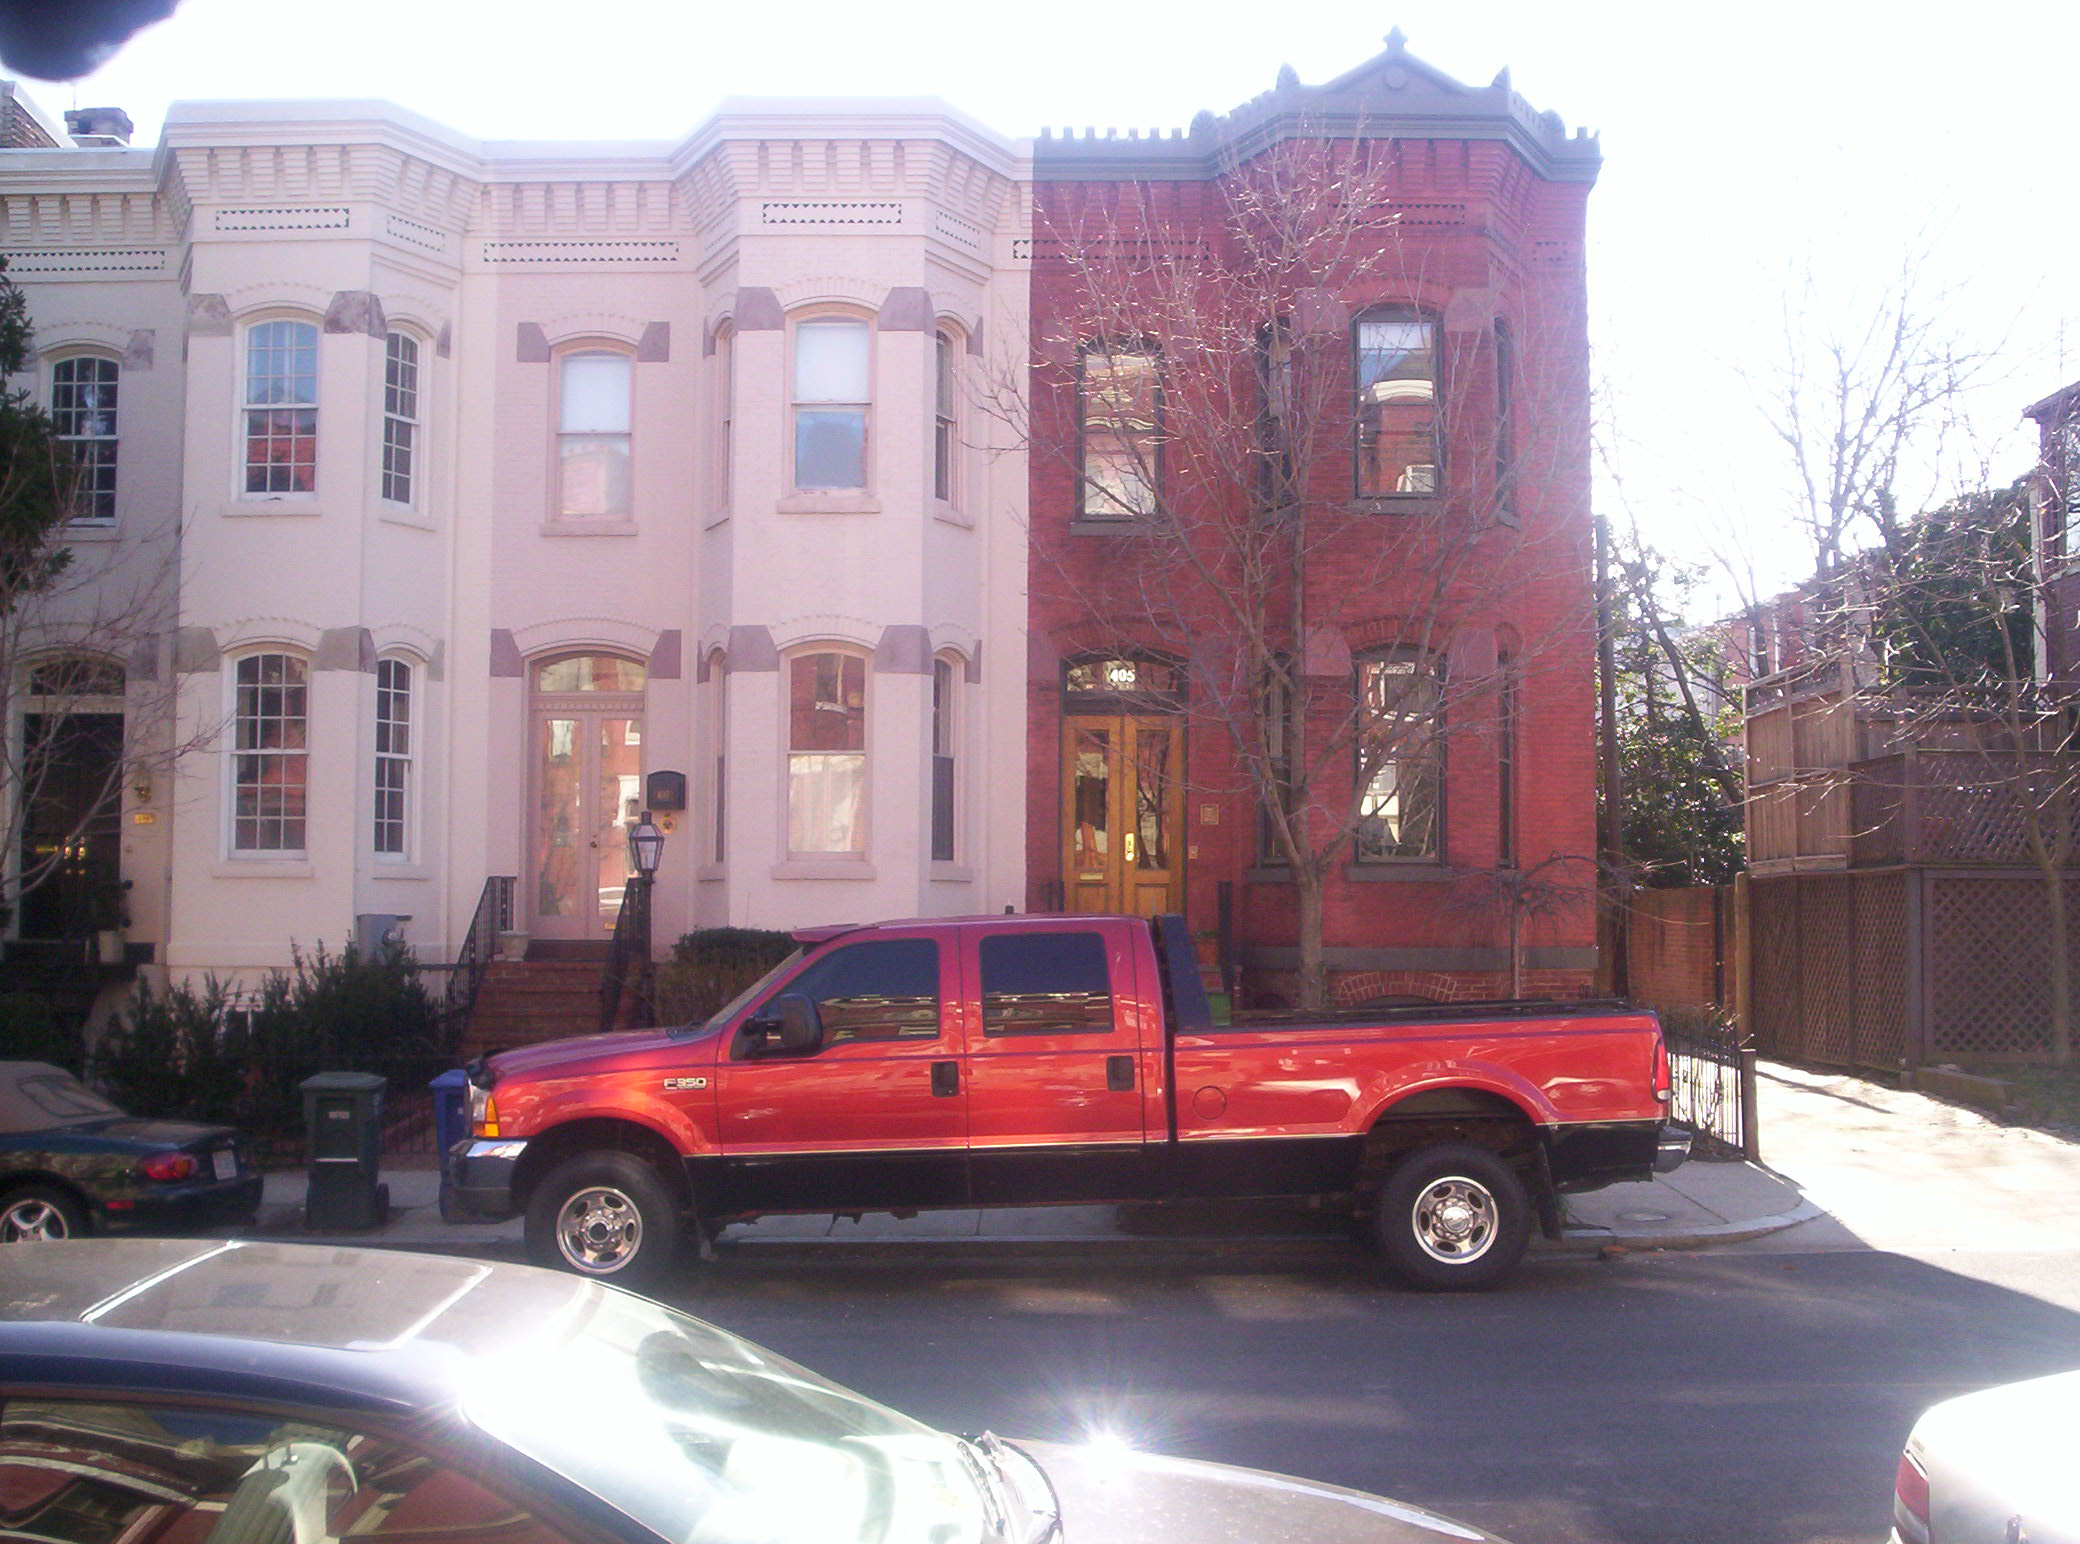 The Ford F-350 is wider than the typical Capitol Hill rowhouse